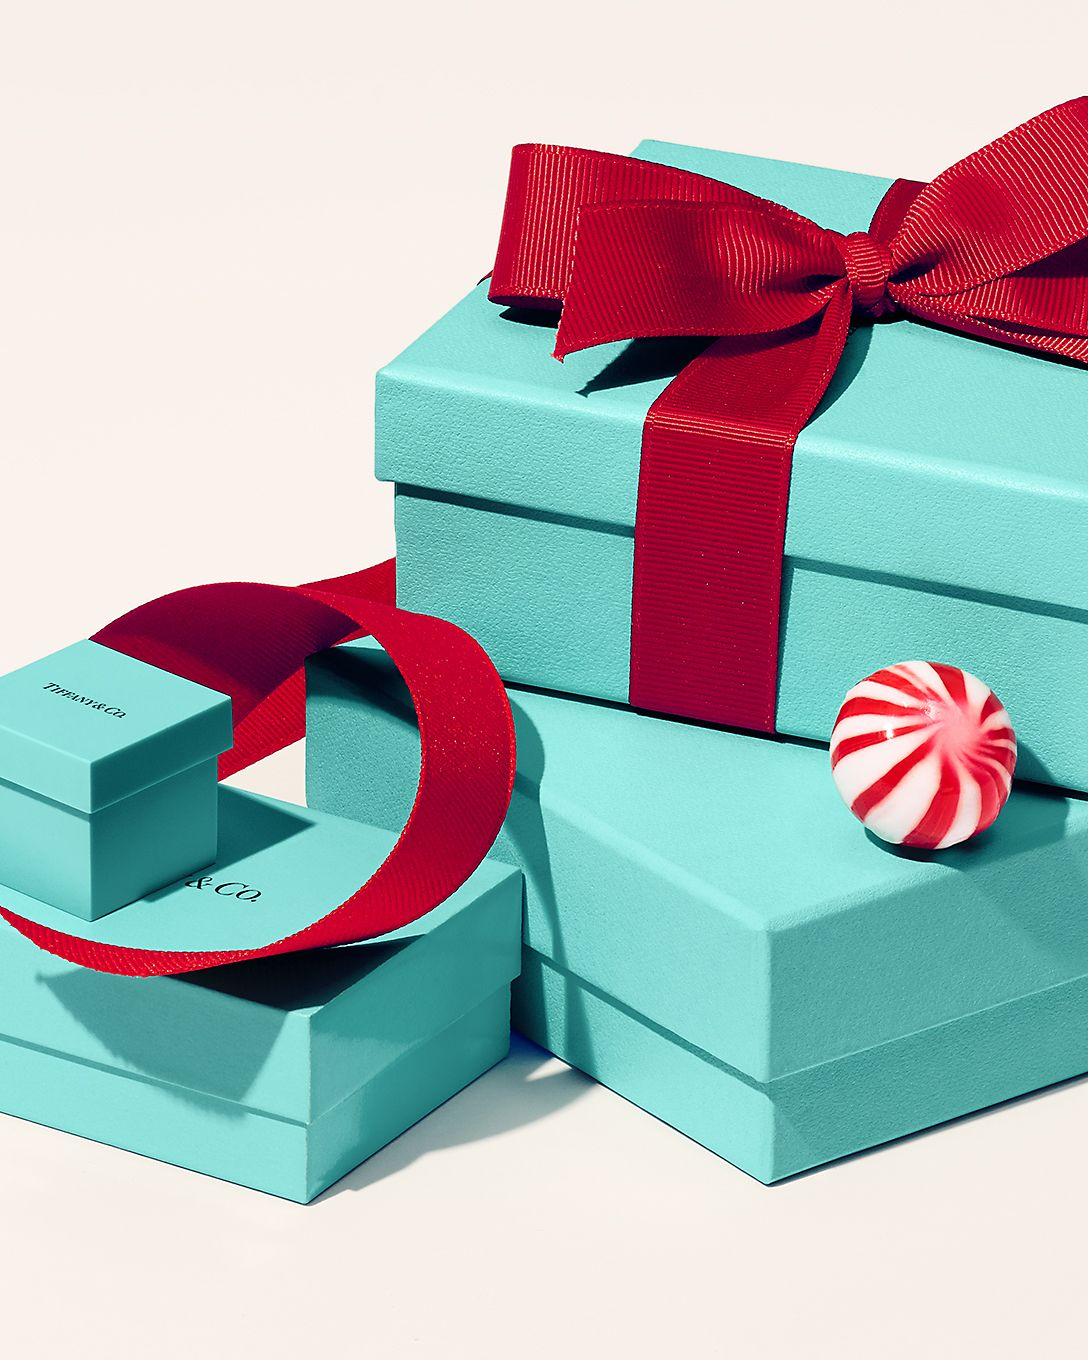 Shop Tiffany & Co. Gifts ¥50,000 & Under